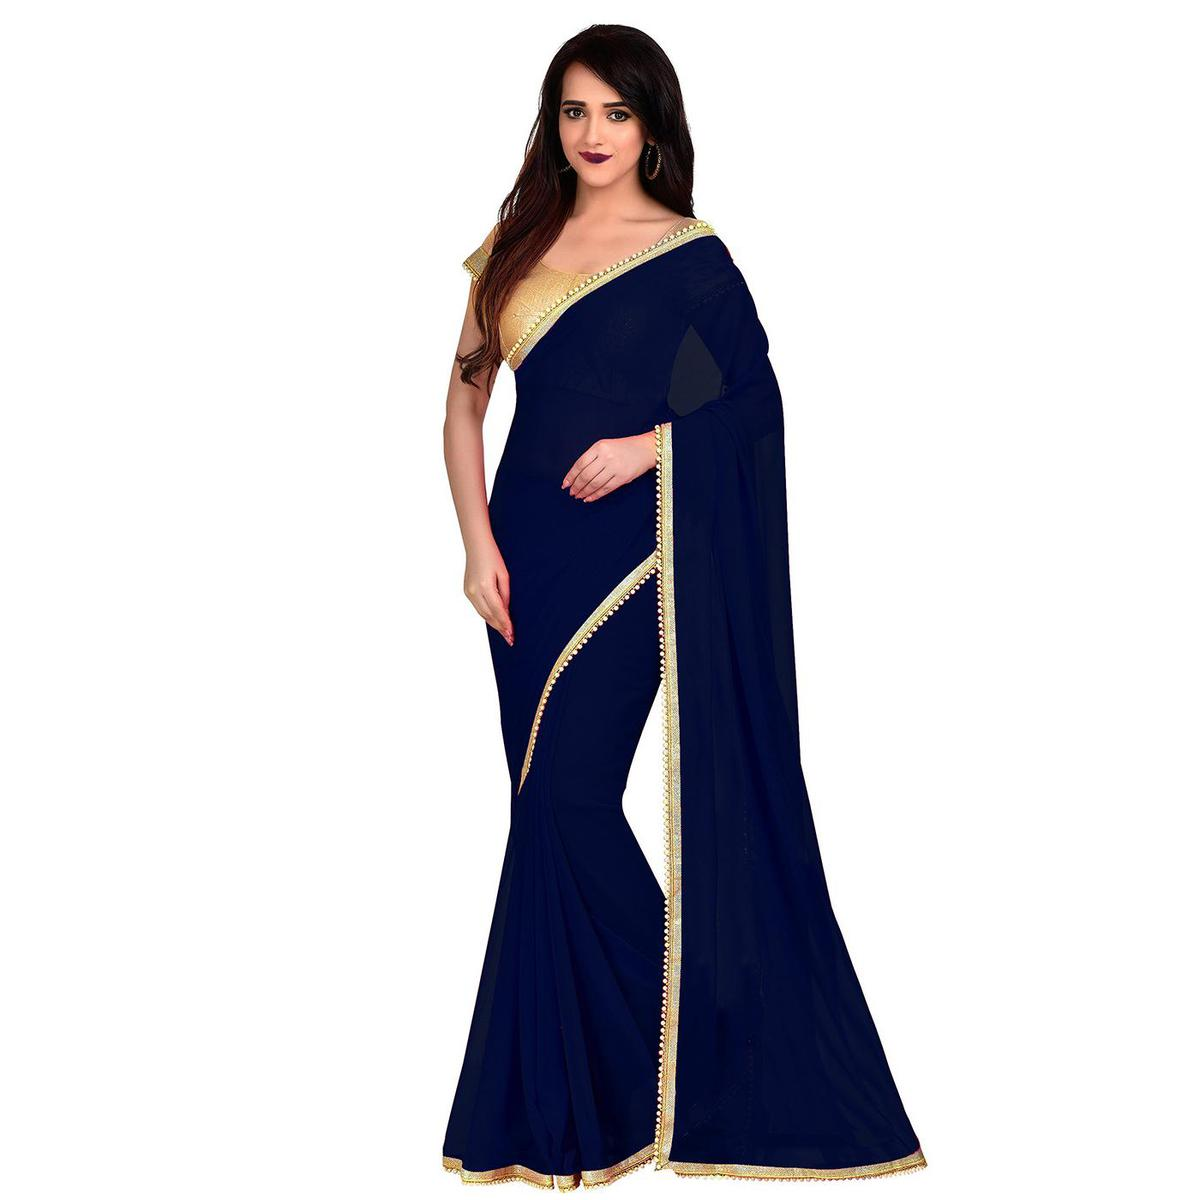 Blooming Navy Blue Colored Party Wear Georgette Saree With Matching Blouse.